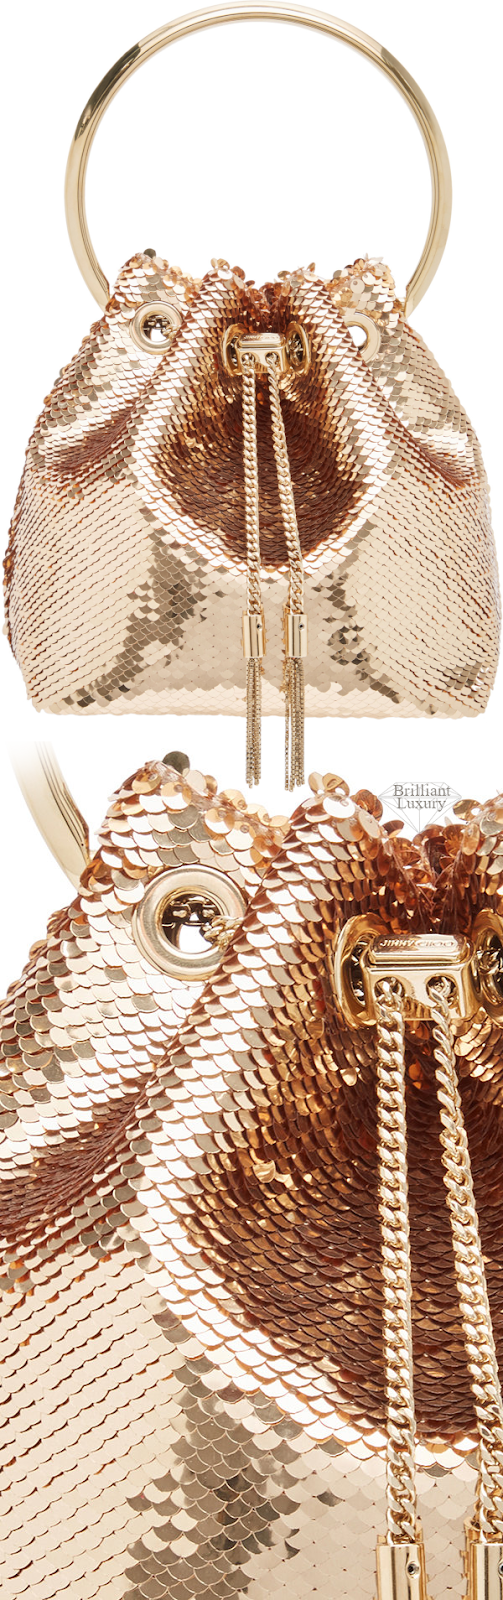 Jimmy Choo Bon Bon Sequined Golden Metallic Satin Bucket Bag #brilliantluxury